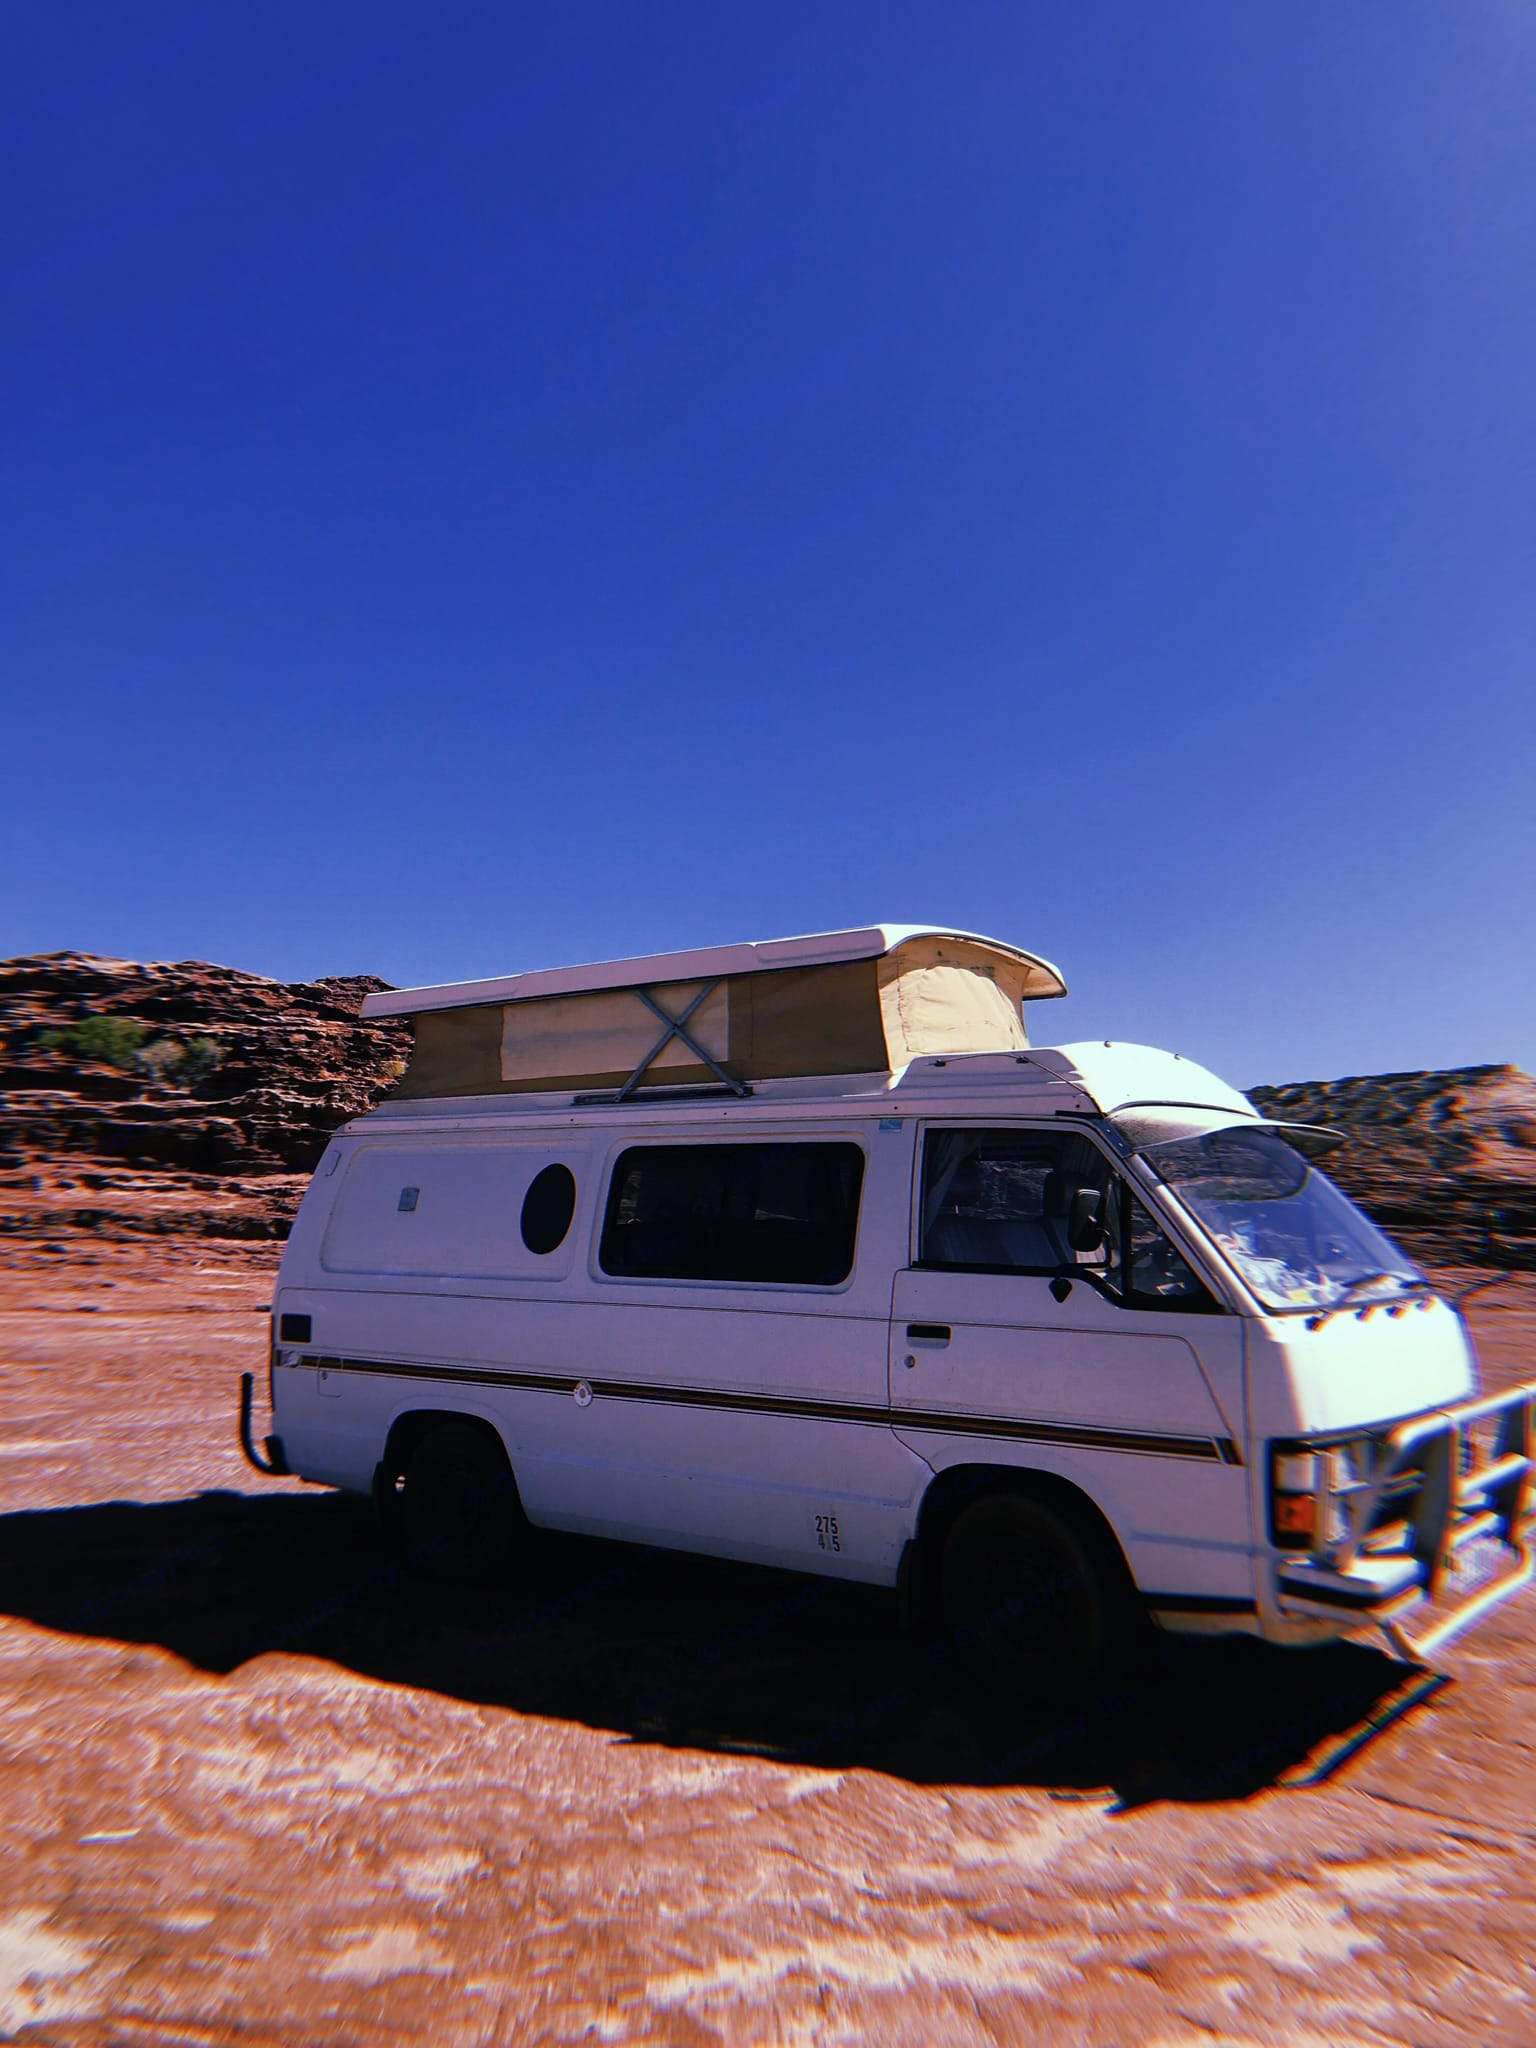 Cruise into the Aussie lifestyle with this iconic camper . Toyota Hiace 1985